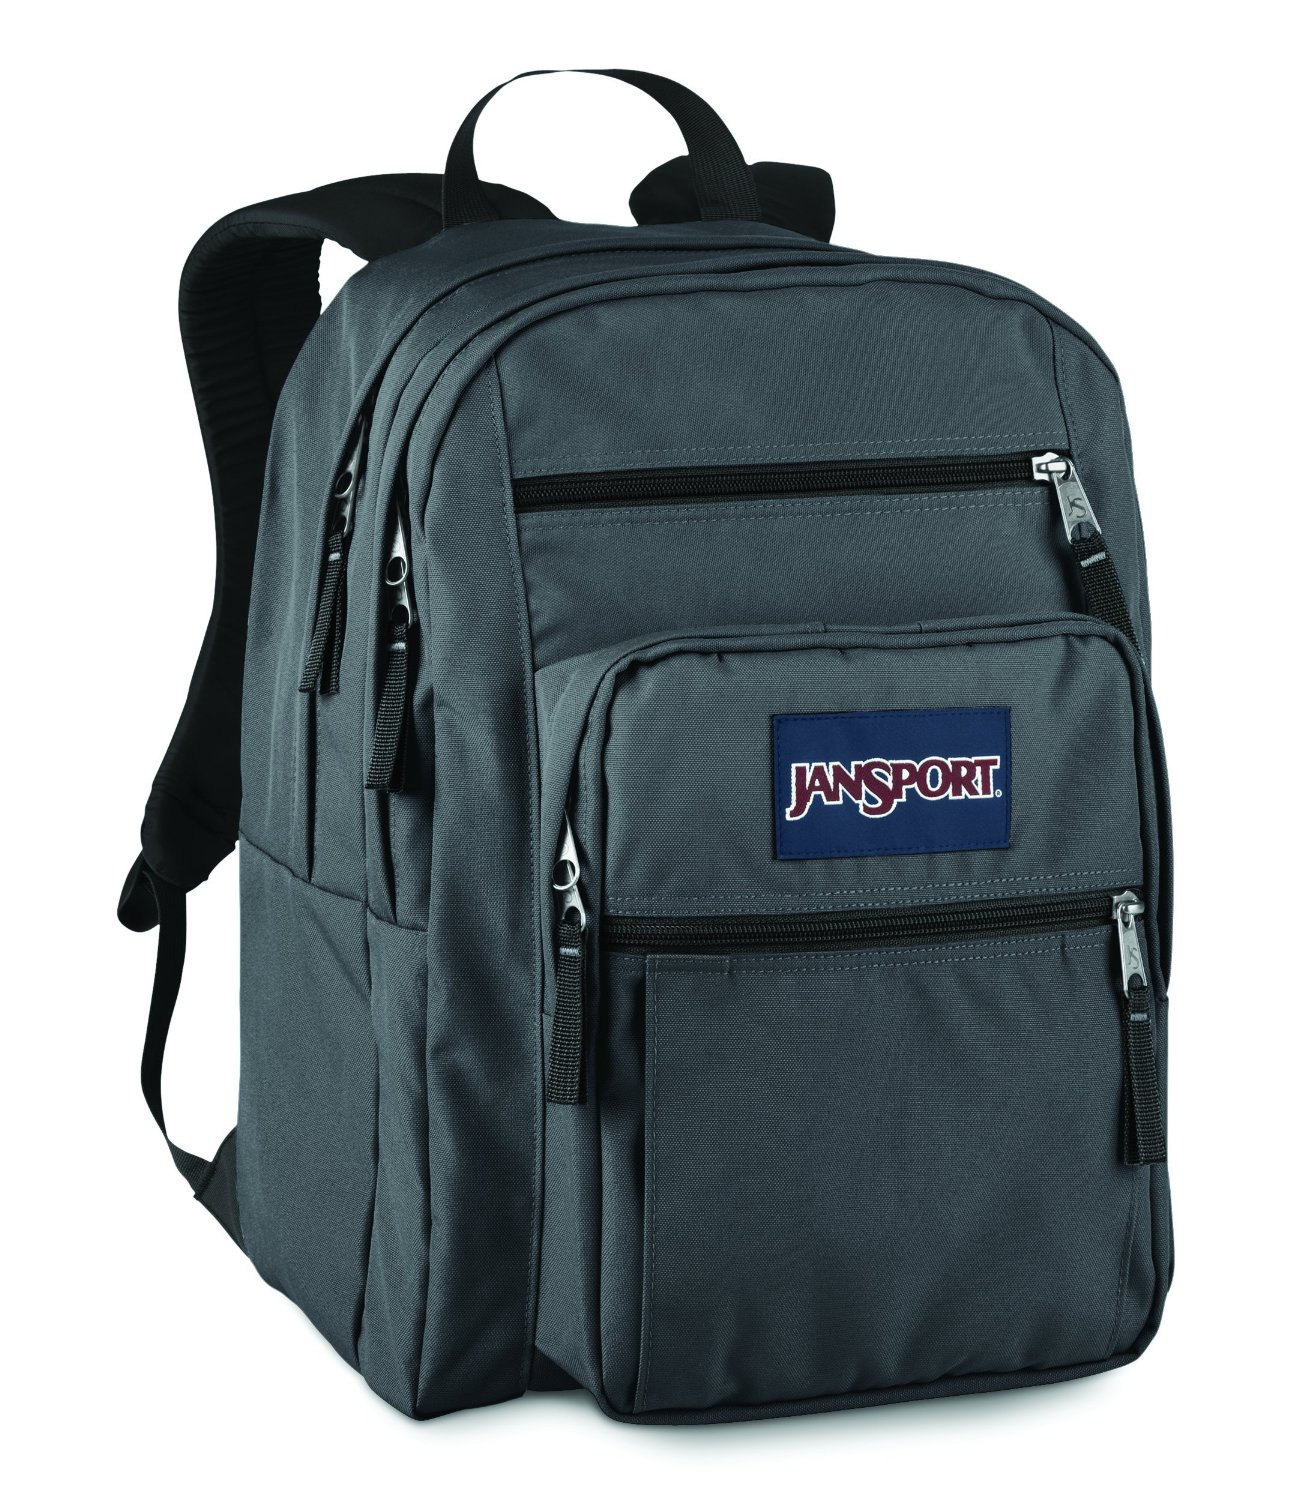 Jansport Big Student Backpack Clearance sqX3P8jR